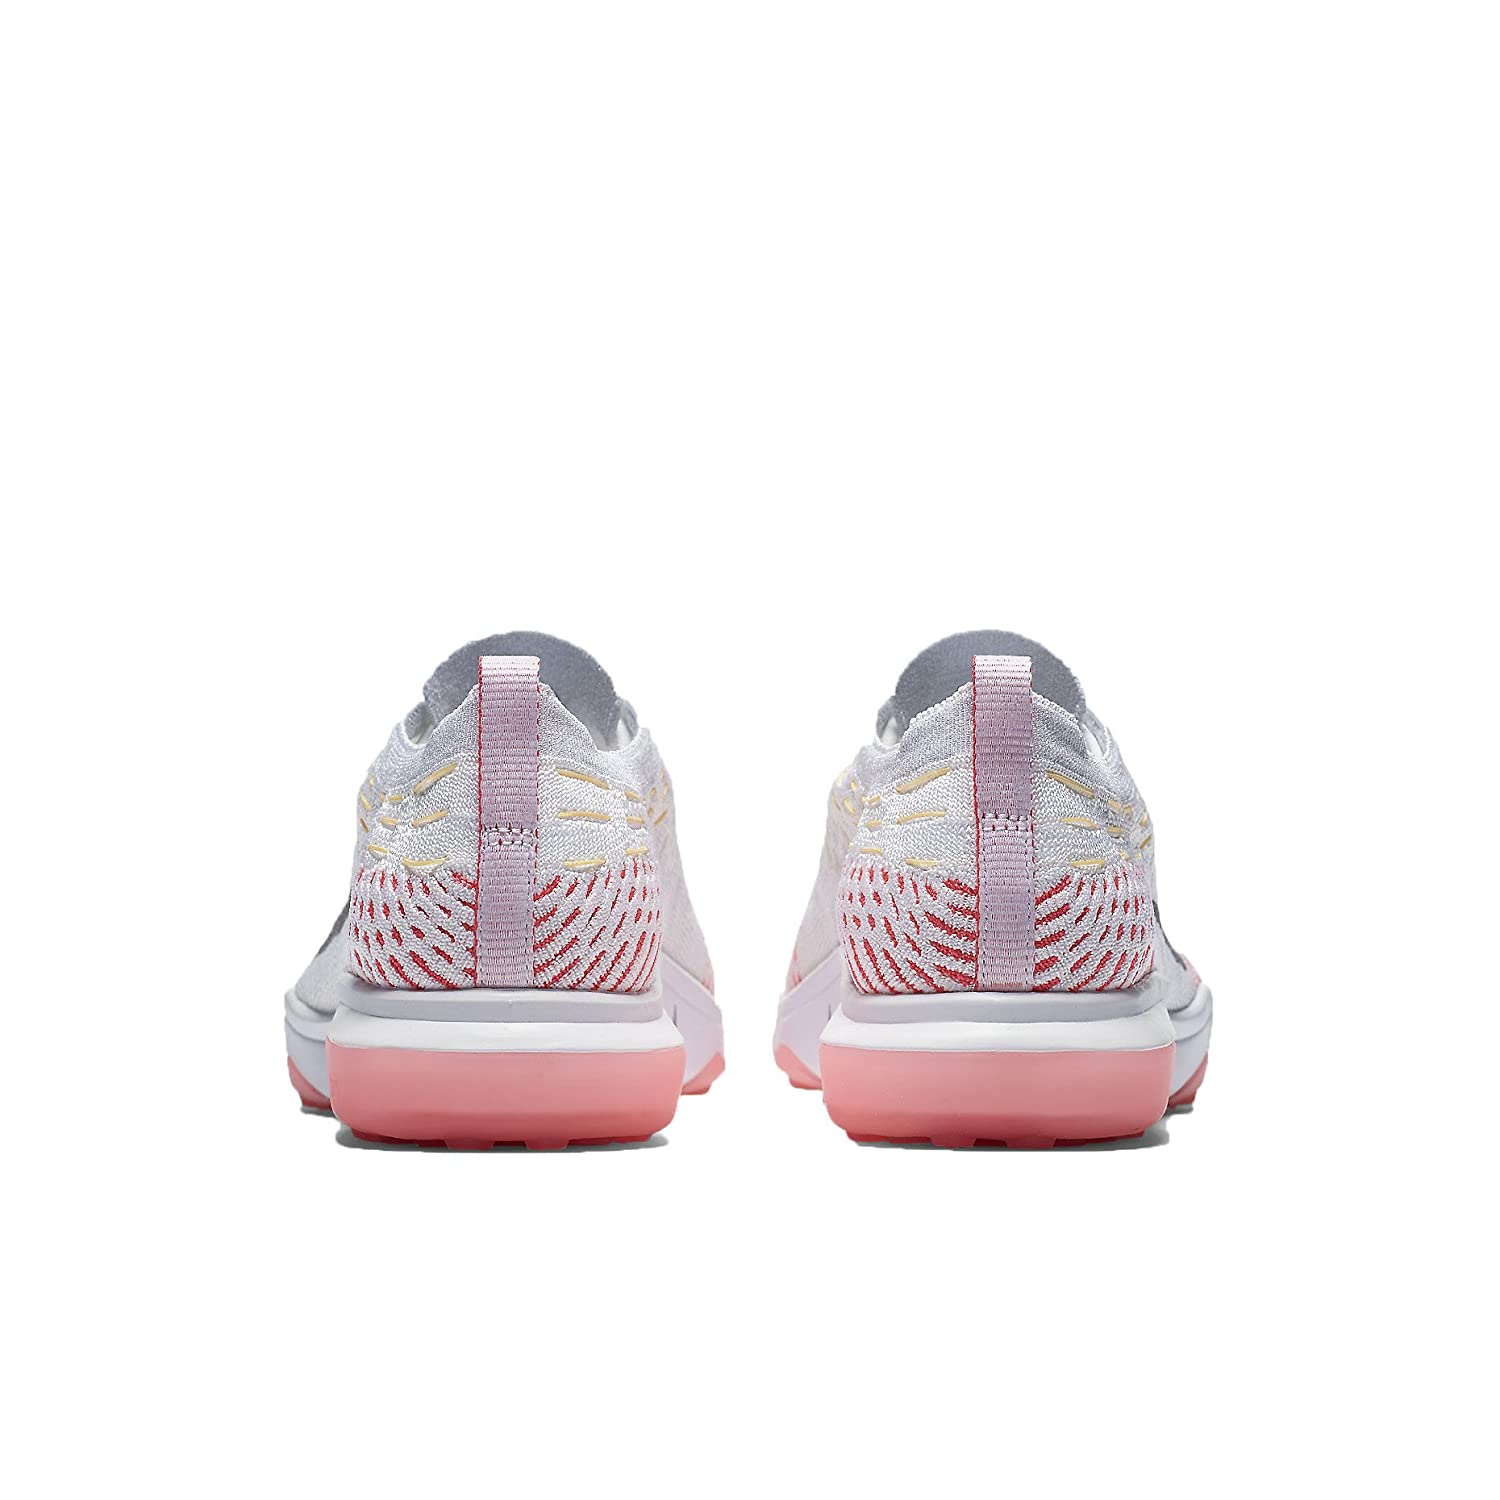 NIKE Women's Air Zoom Fearless Flyknit Running Shoes B06ZXTZL6V 6 M US|White/Racer Pink/Melon Tint/Wolf Grey